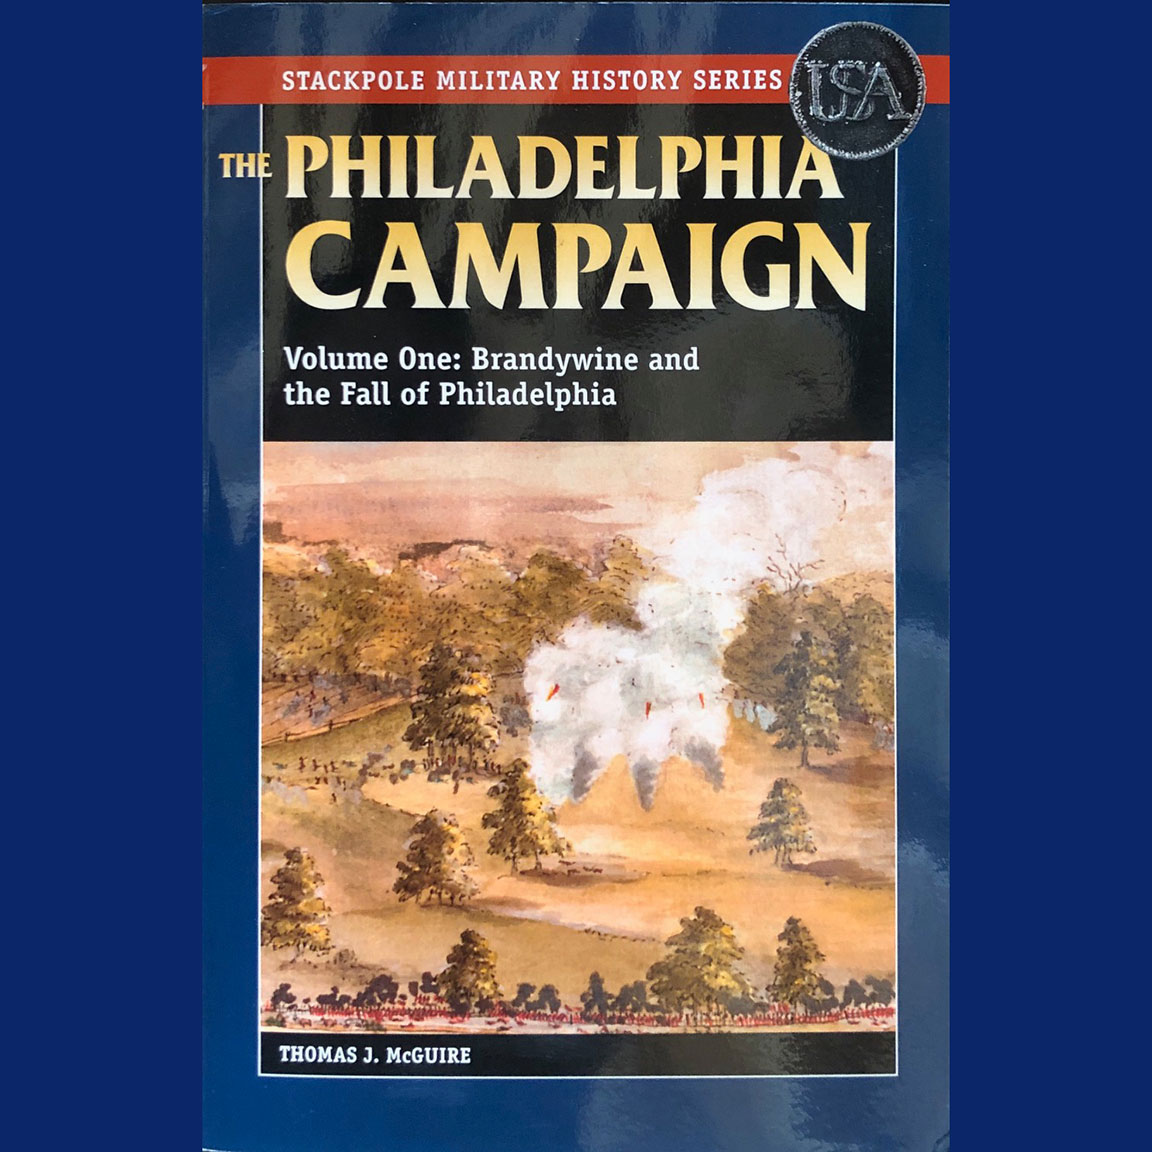 The Philadelphia Campaign Vol. 1: Brandywine And The Fall Of Philadelphia – By Thomas McGuire